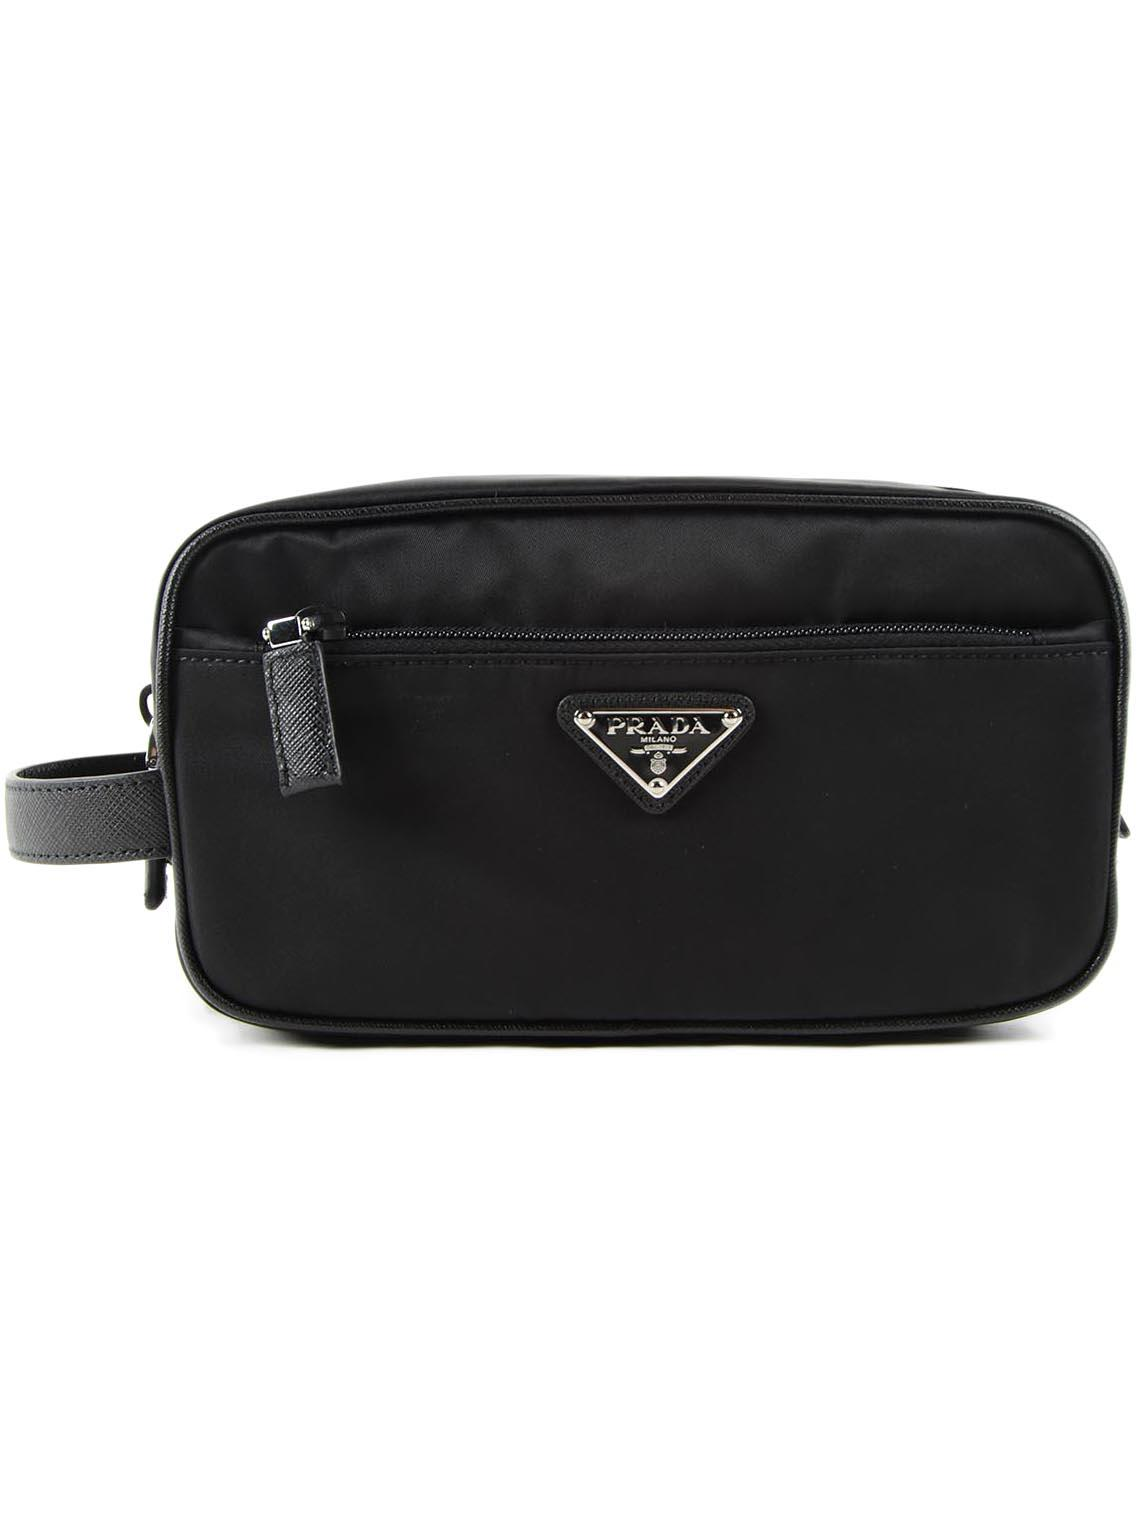 24eb8bda6b50 Prada - Black Pouch Tessuto+saffiano for Men - Lyst. View fullscreen